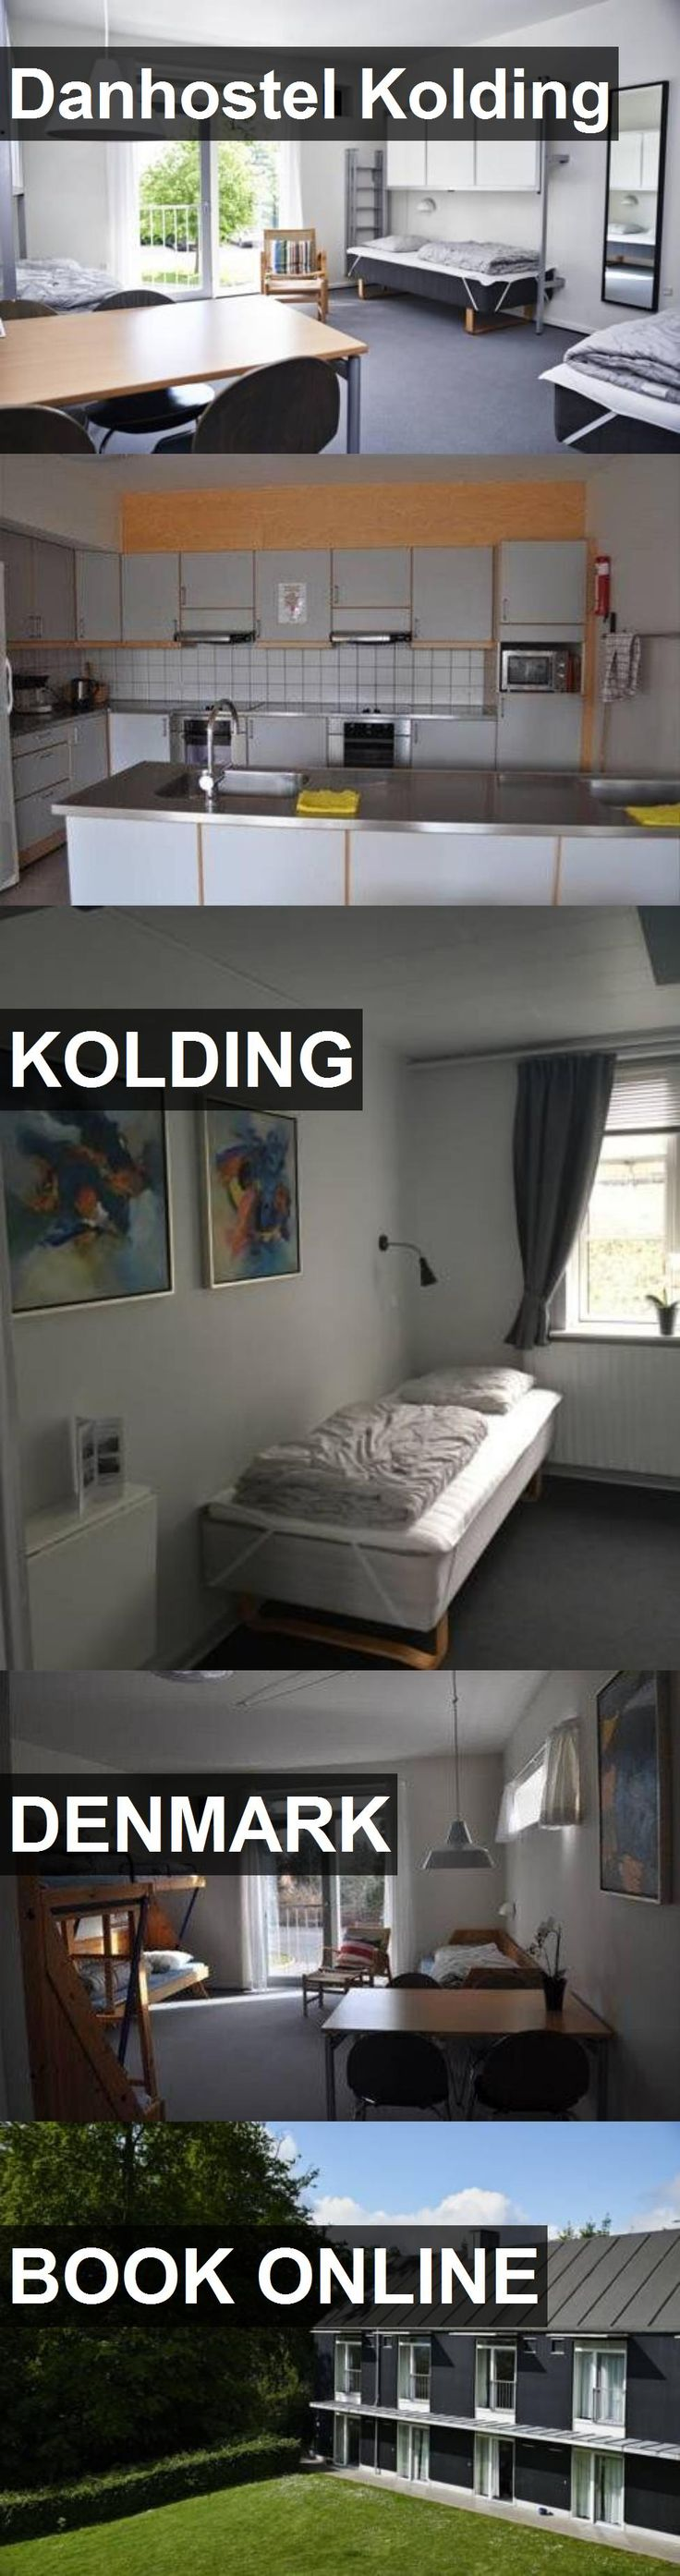 Danhostel Kolding in Kolding, Denmark. For more information, photos, reviews and best prices please follow the link. #Denmark #Kolding #travel #vacation #hostel